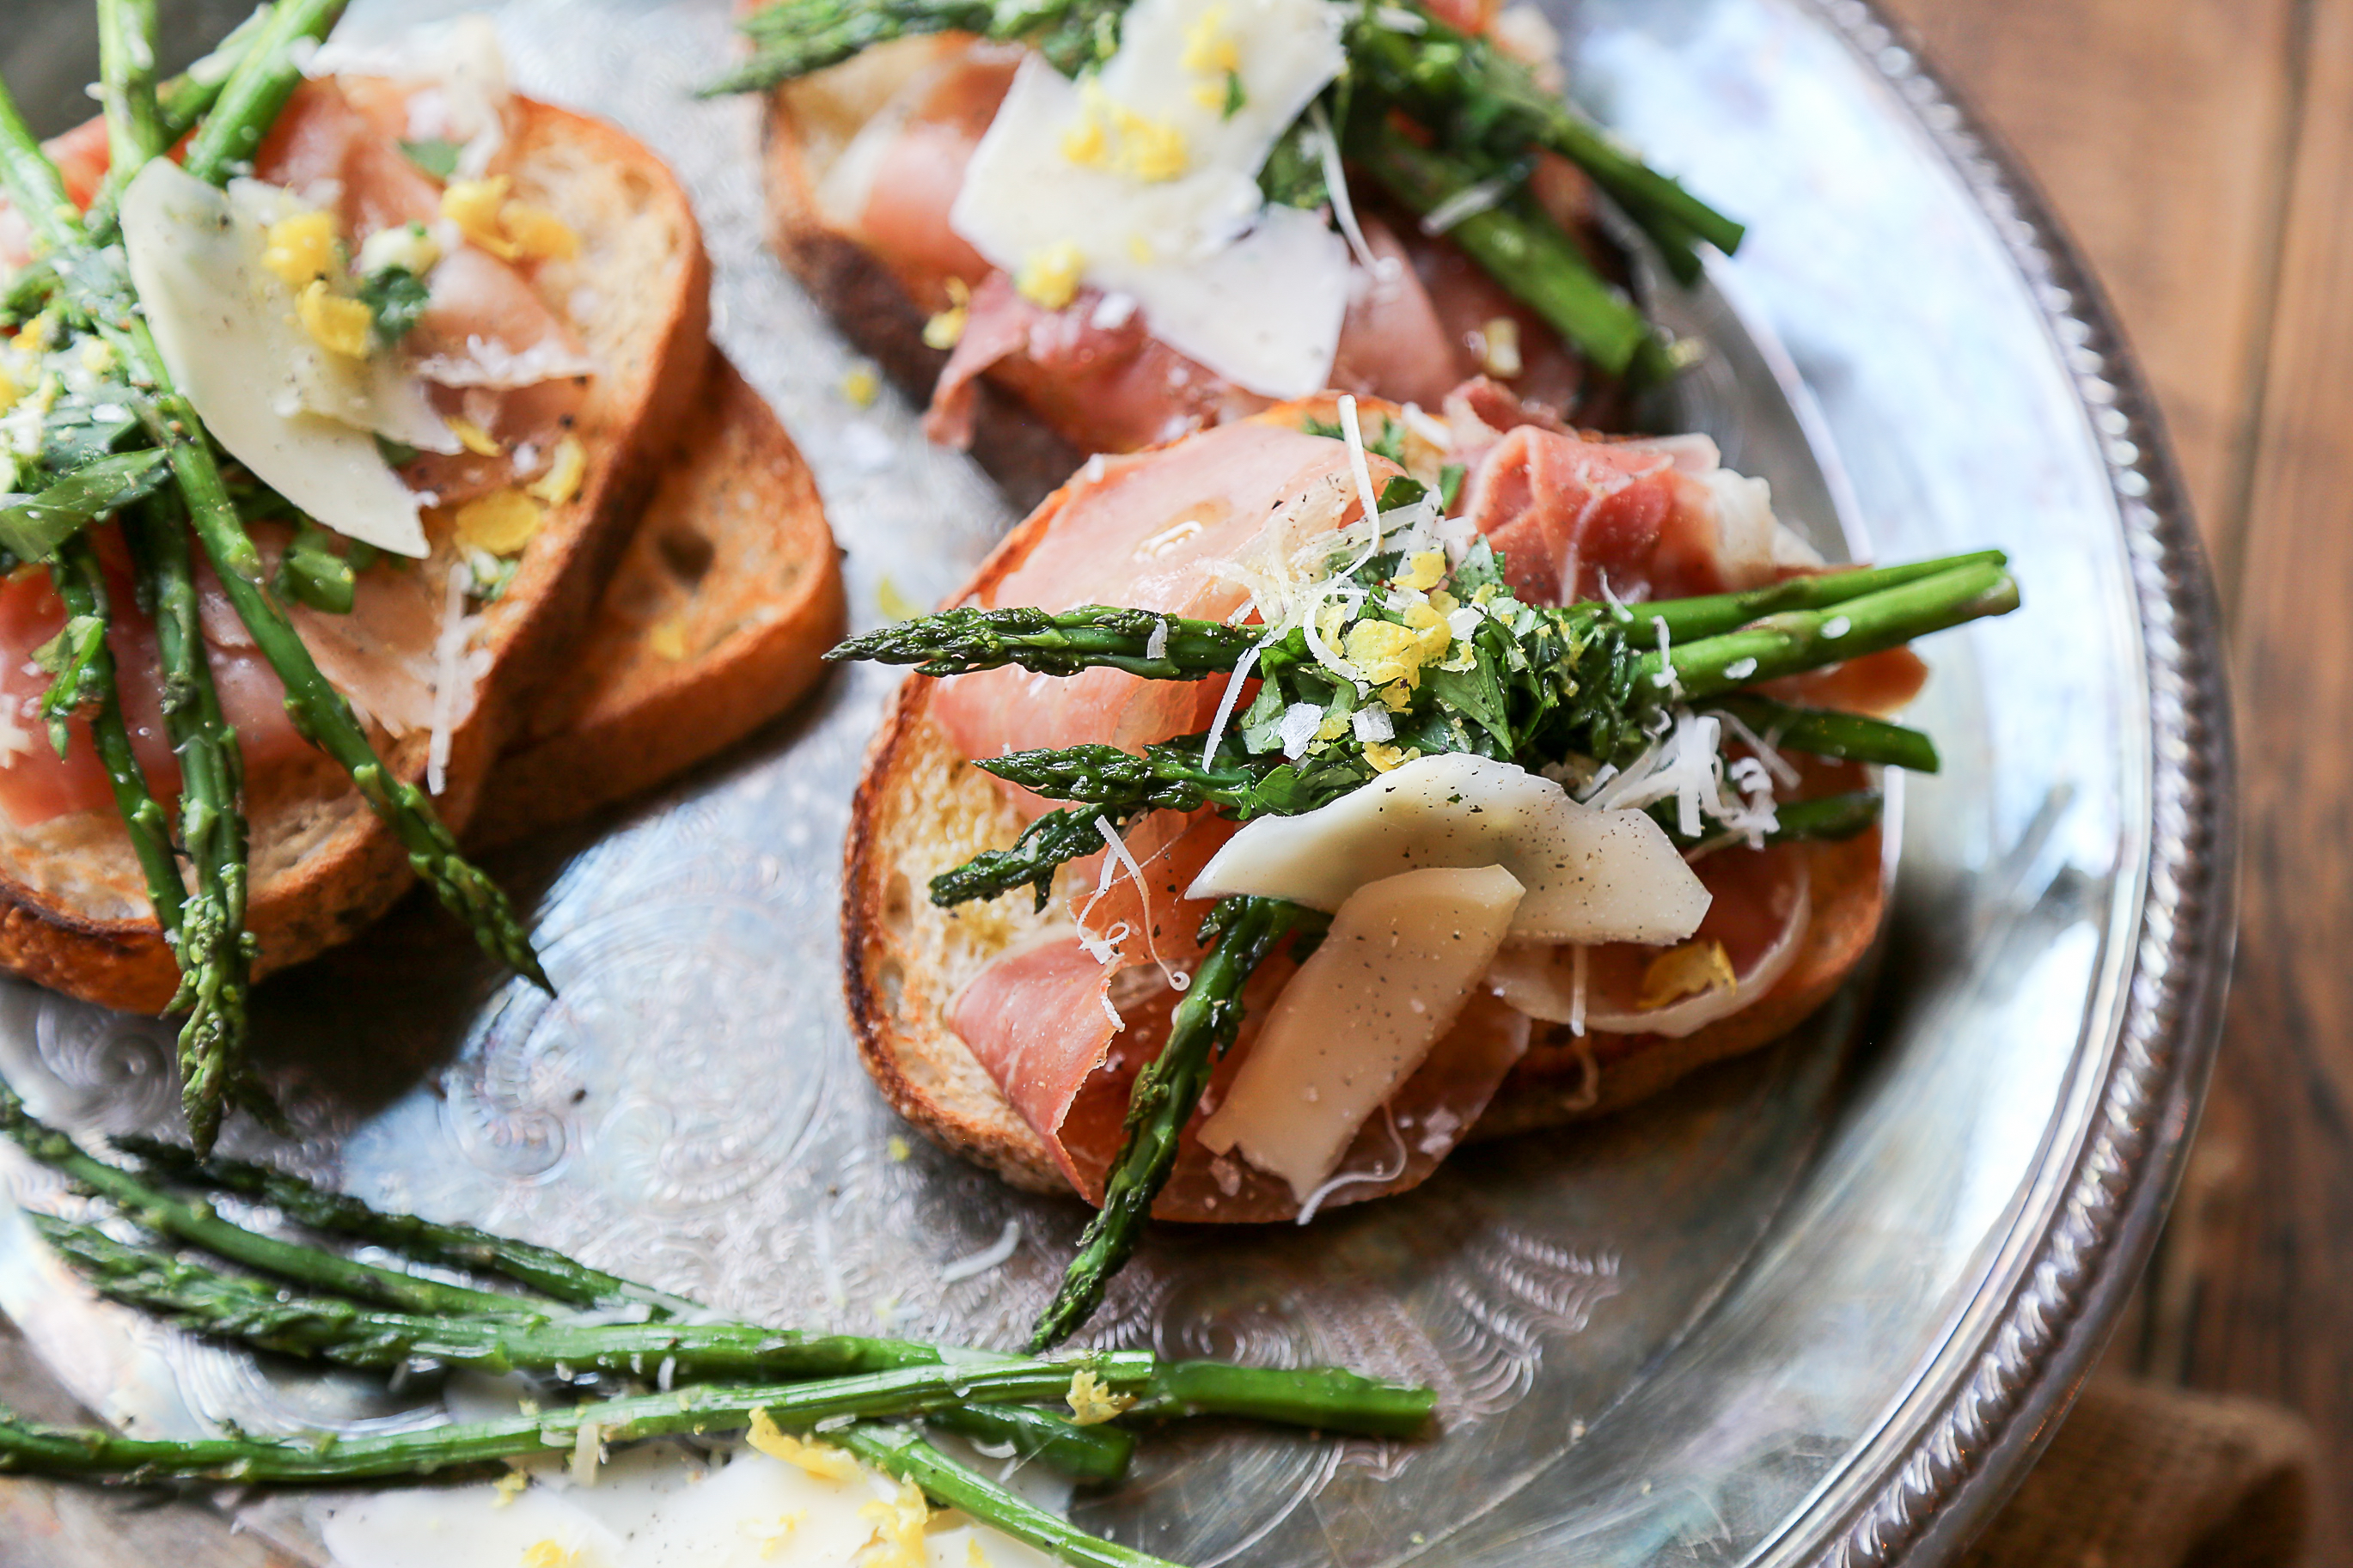 Italy-Bruschette of Pancetta, Pecorino-Roasted Asparagus and Gremolata 2